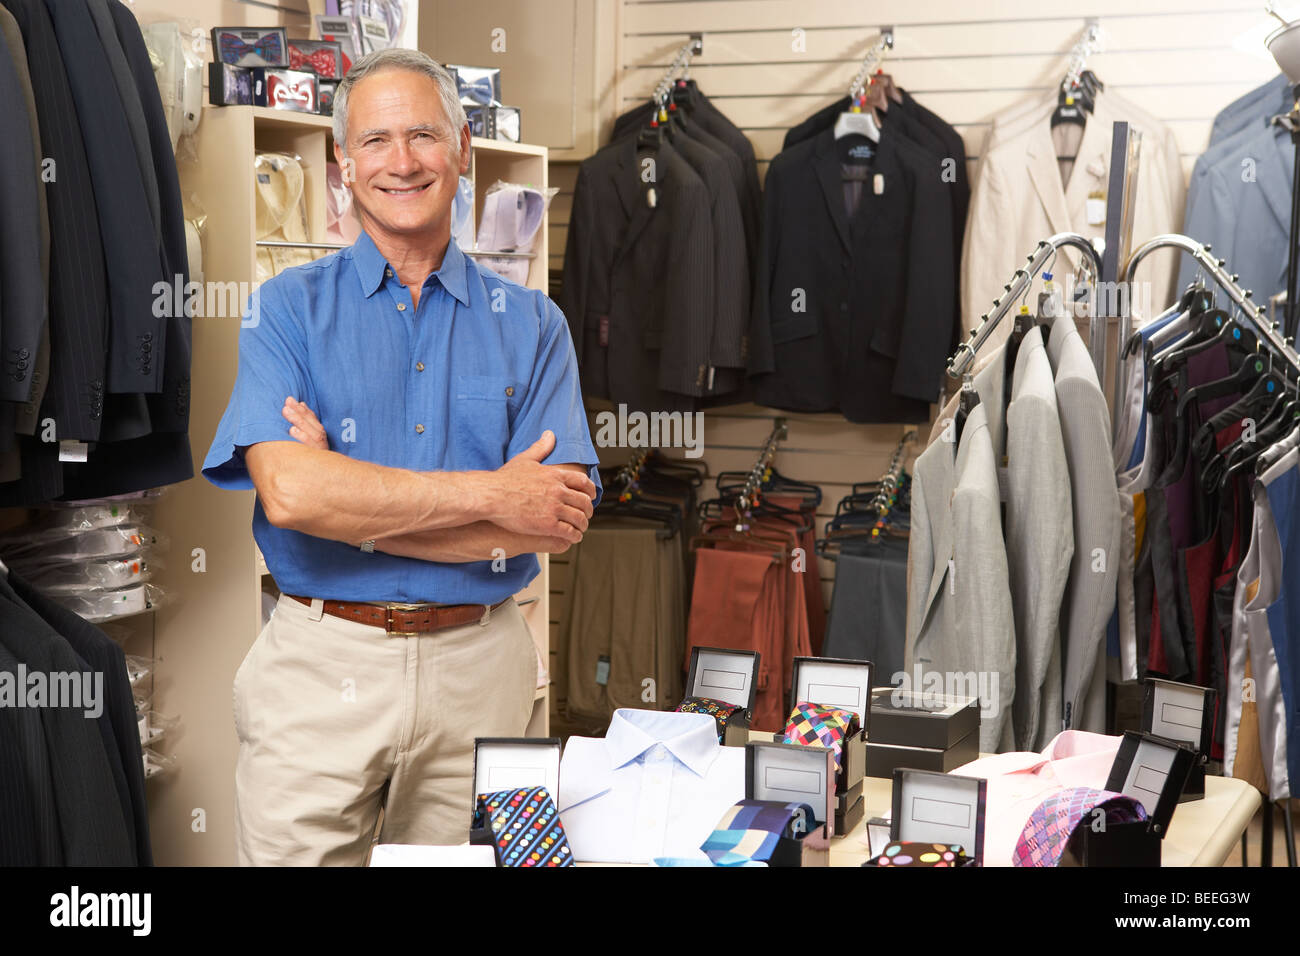 Male sales assistant in clothing store - Stock Image